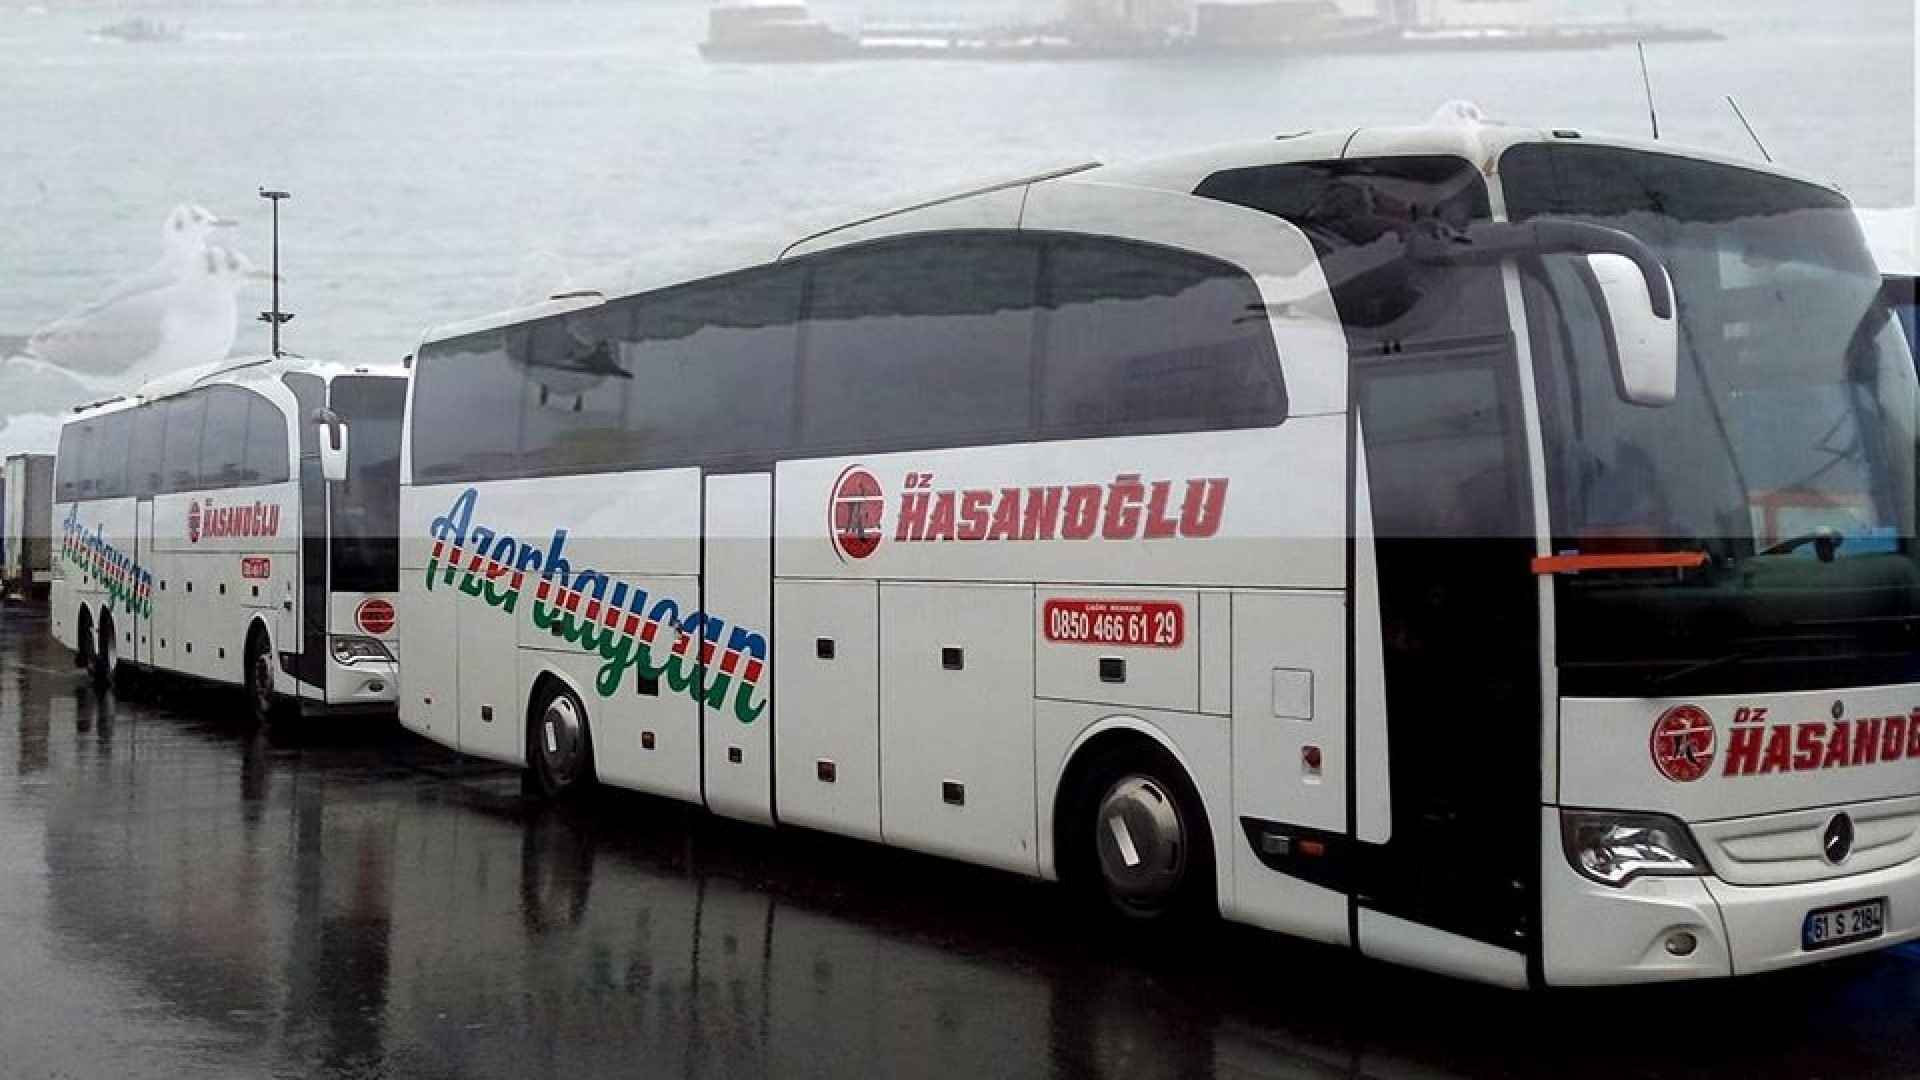 Azerbaijan bus and cargo | Oz Hasanoglu Tourism